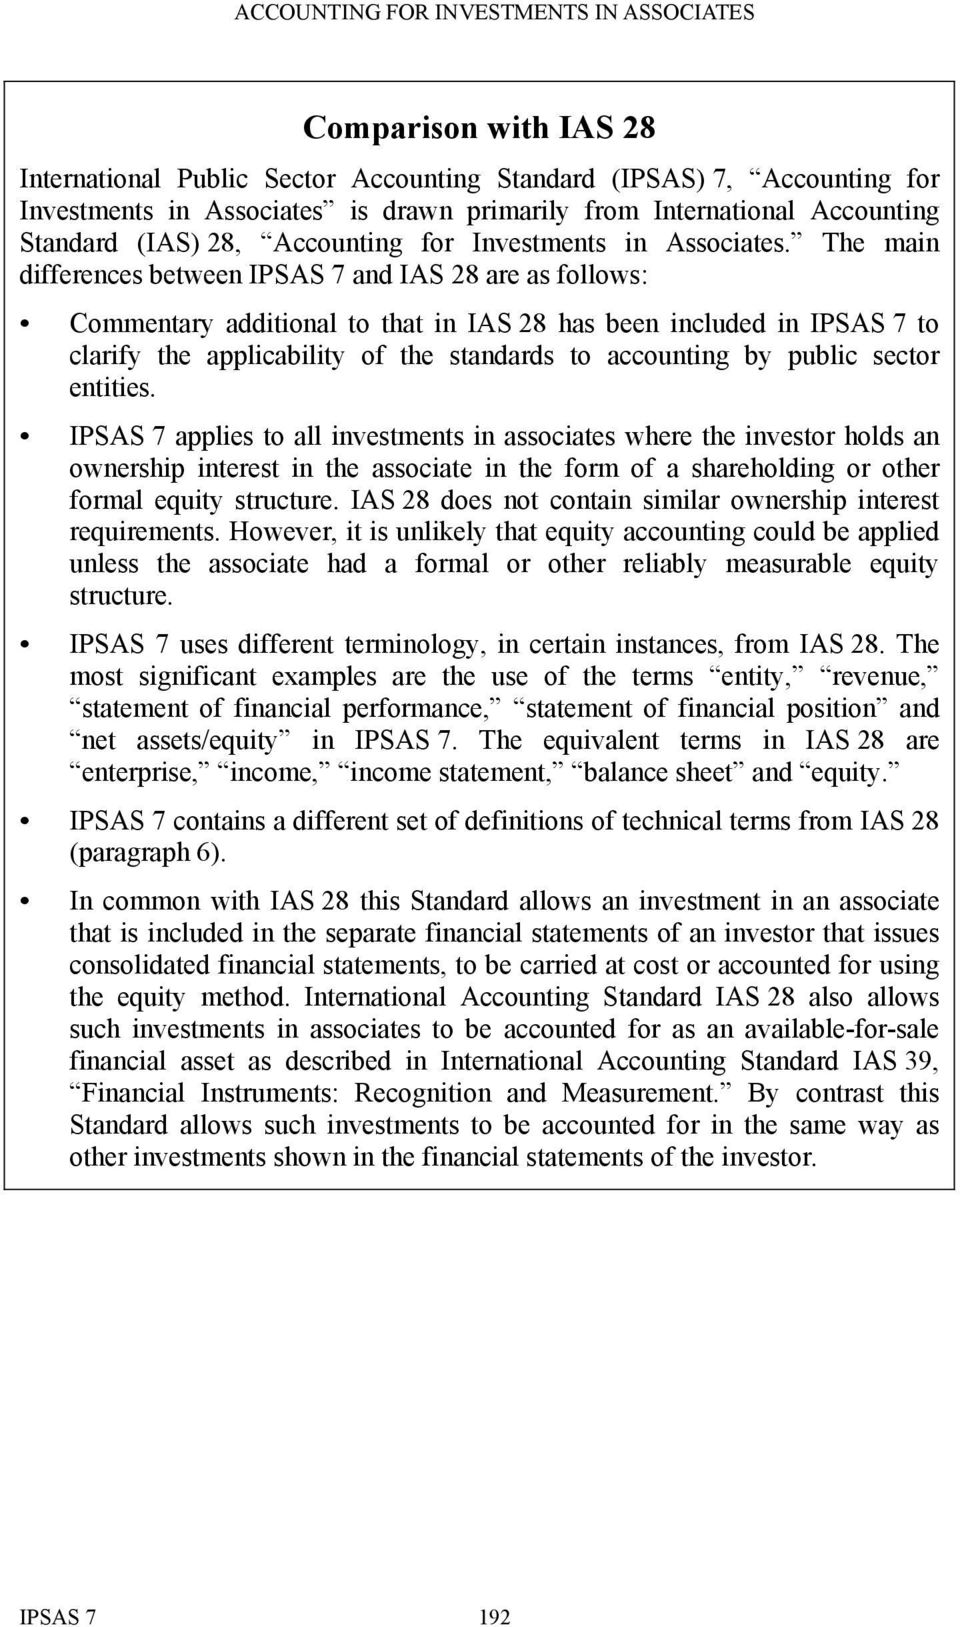 The main differences between IPSAS 7 and IAS 28 are as follows: Commentary additional to that in IAS 28 has been included in IPSAS 7 to clarify the applicability of the standards to accounting by